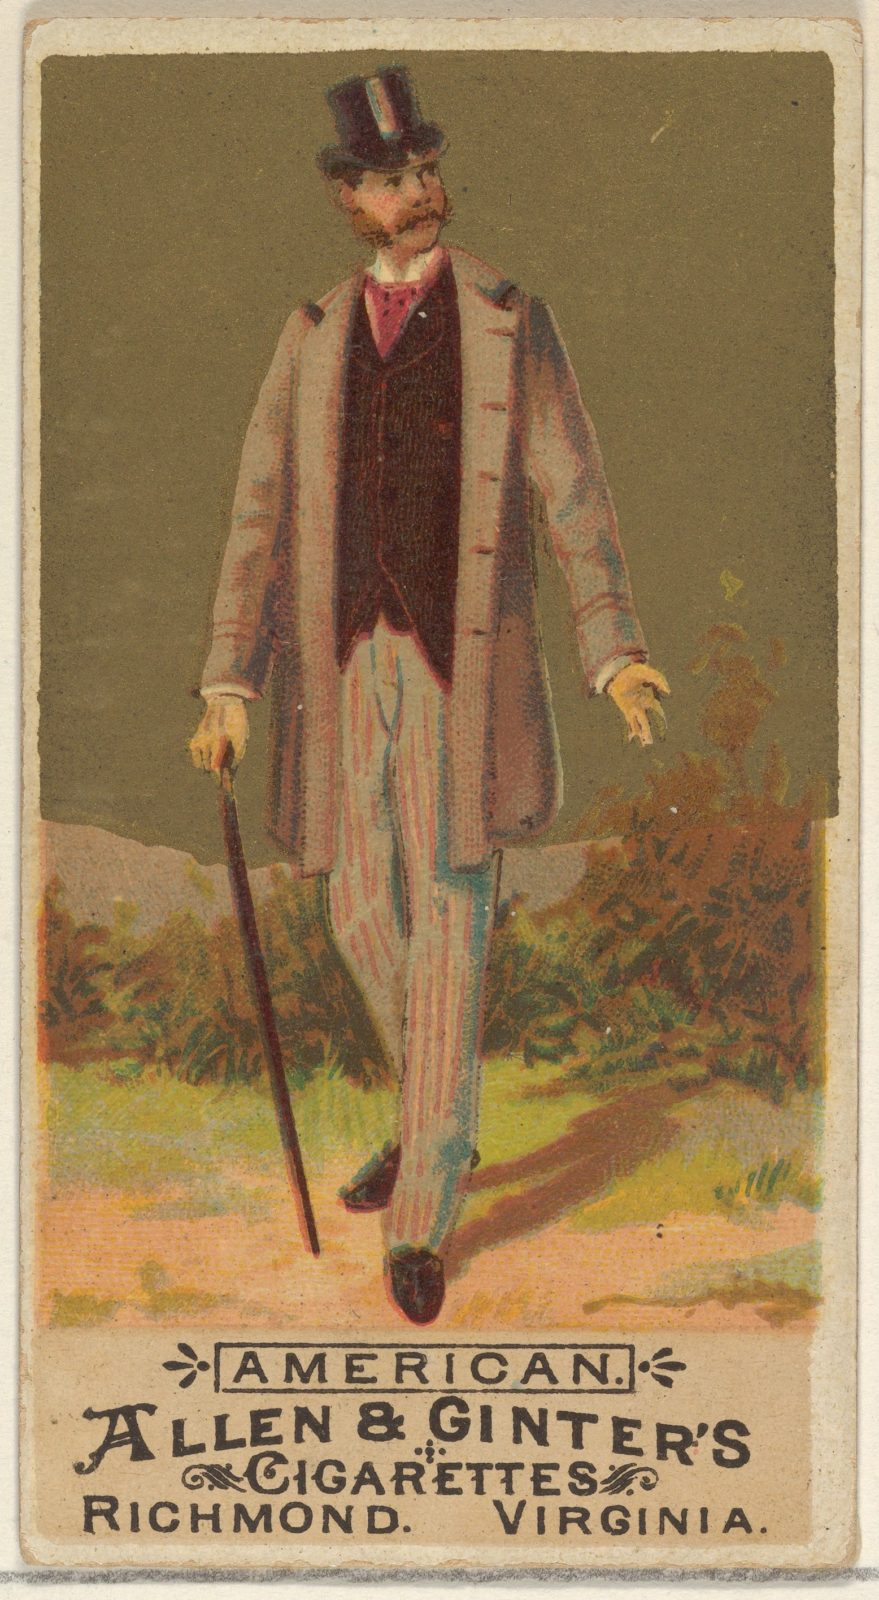 American, from the Natives in Costume series (N16) for Allen & Ginter Cigarettes Brands